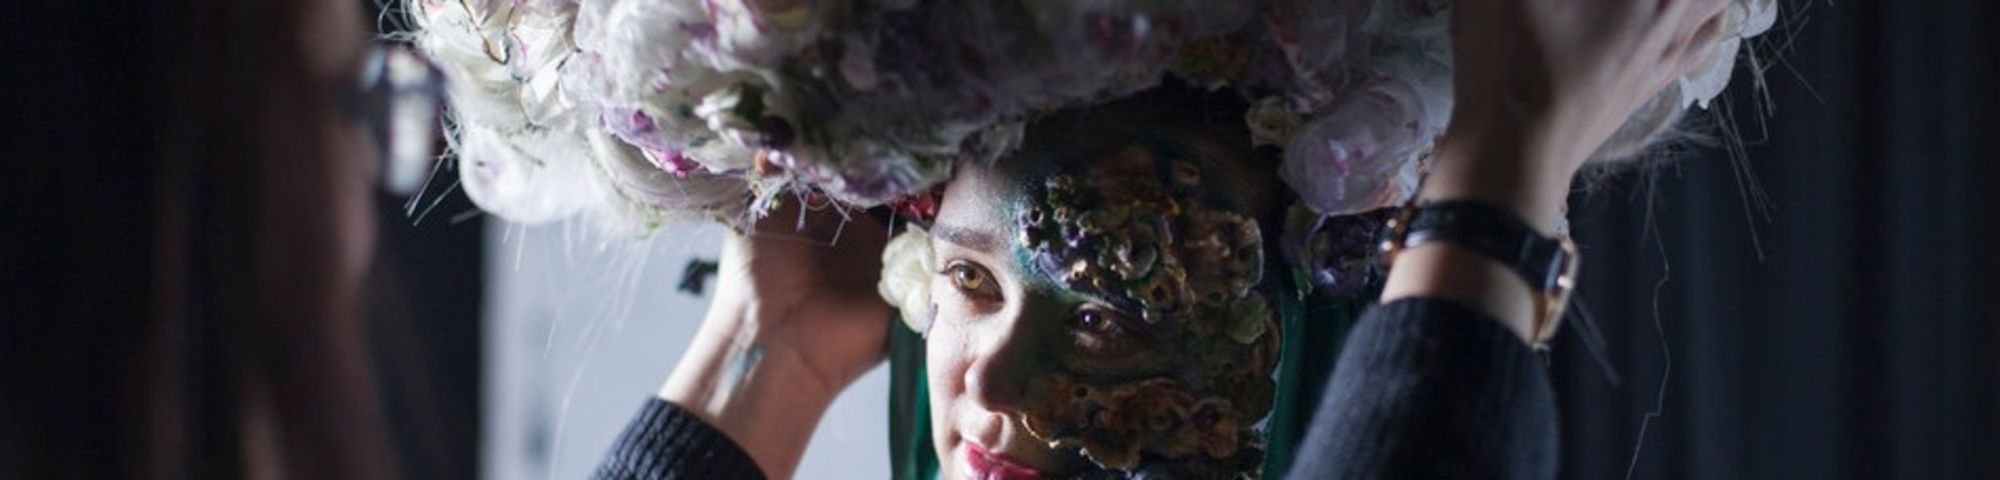 A model having a large floral headpiece adjusted on her head